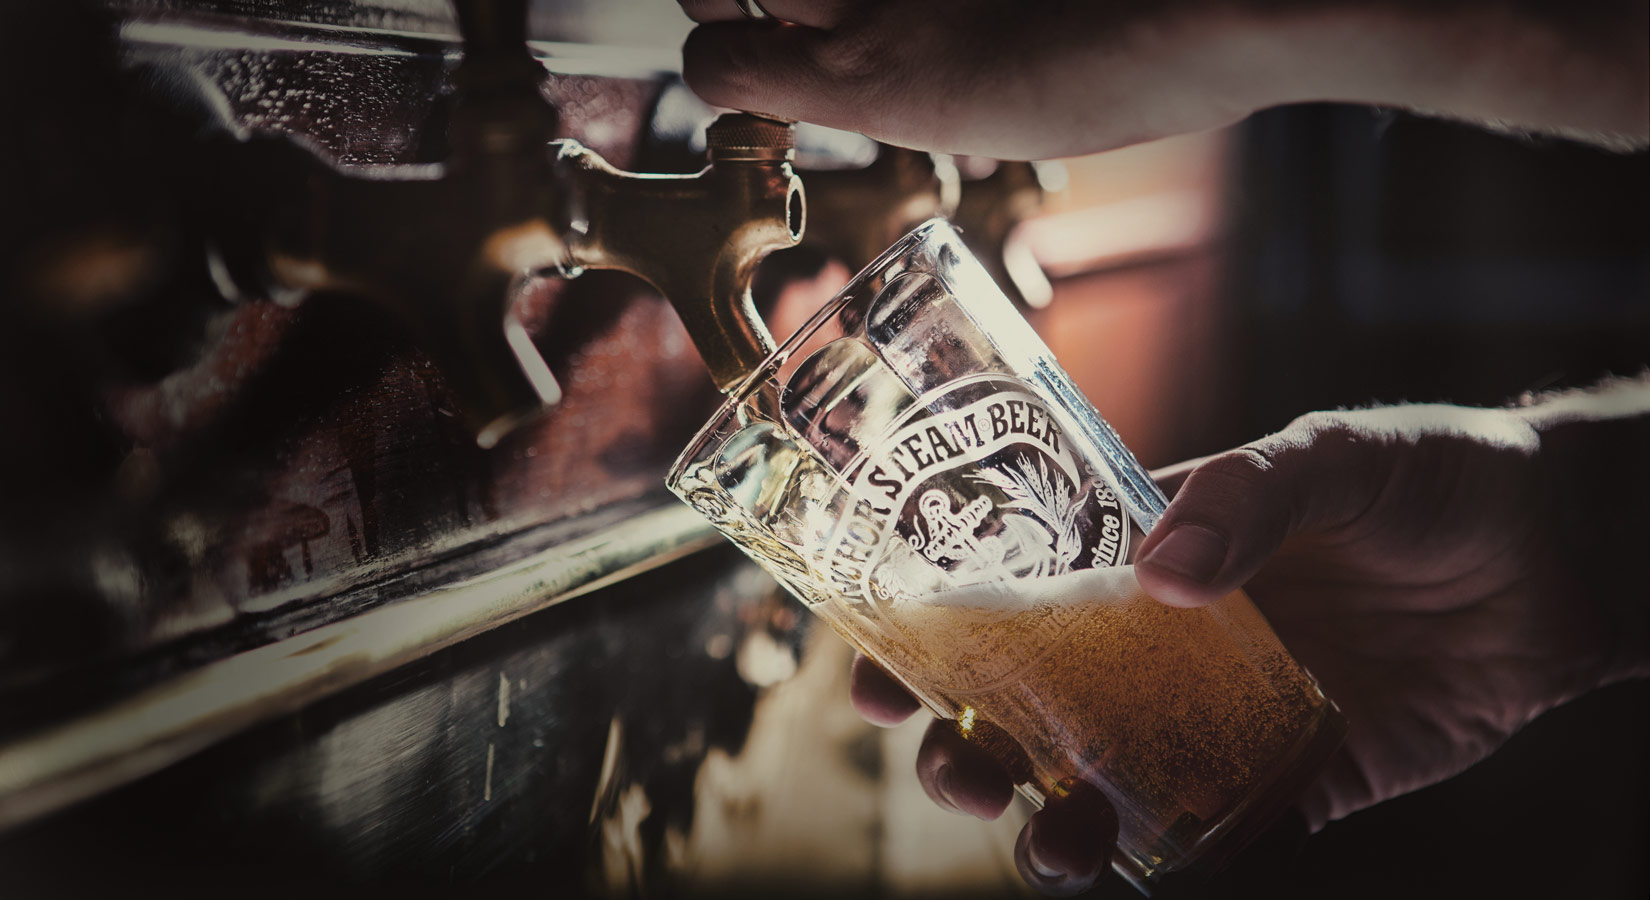 Image Courtesy of  Anchor Brewing Company